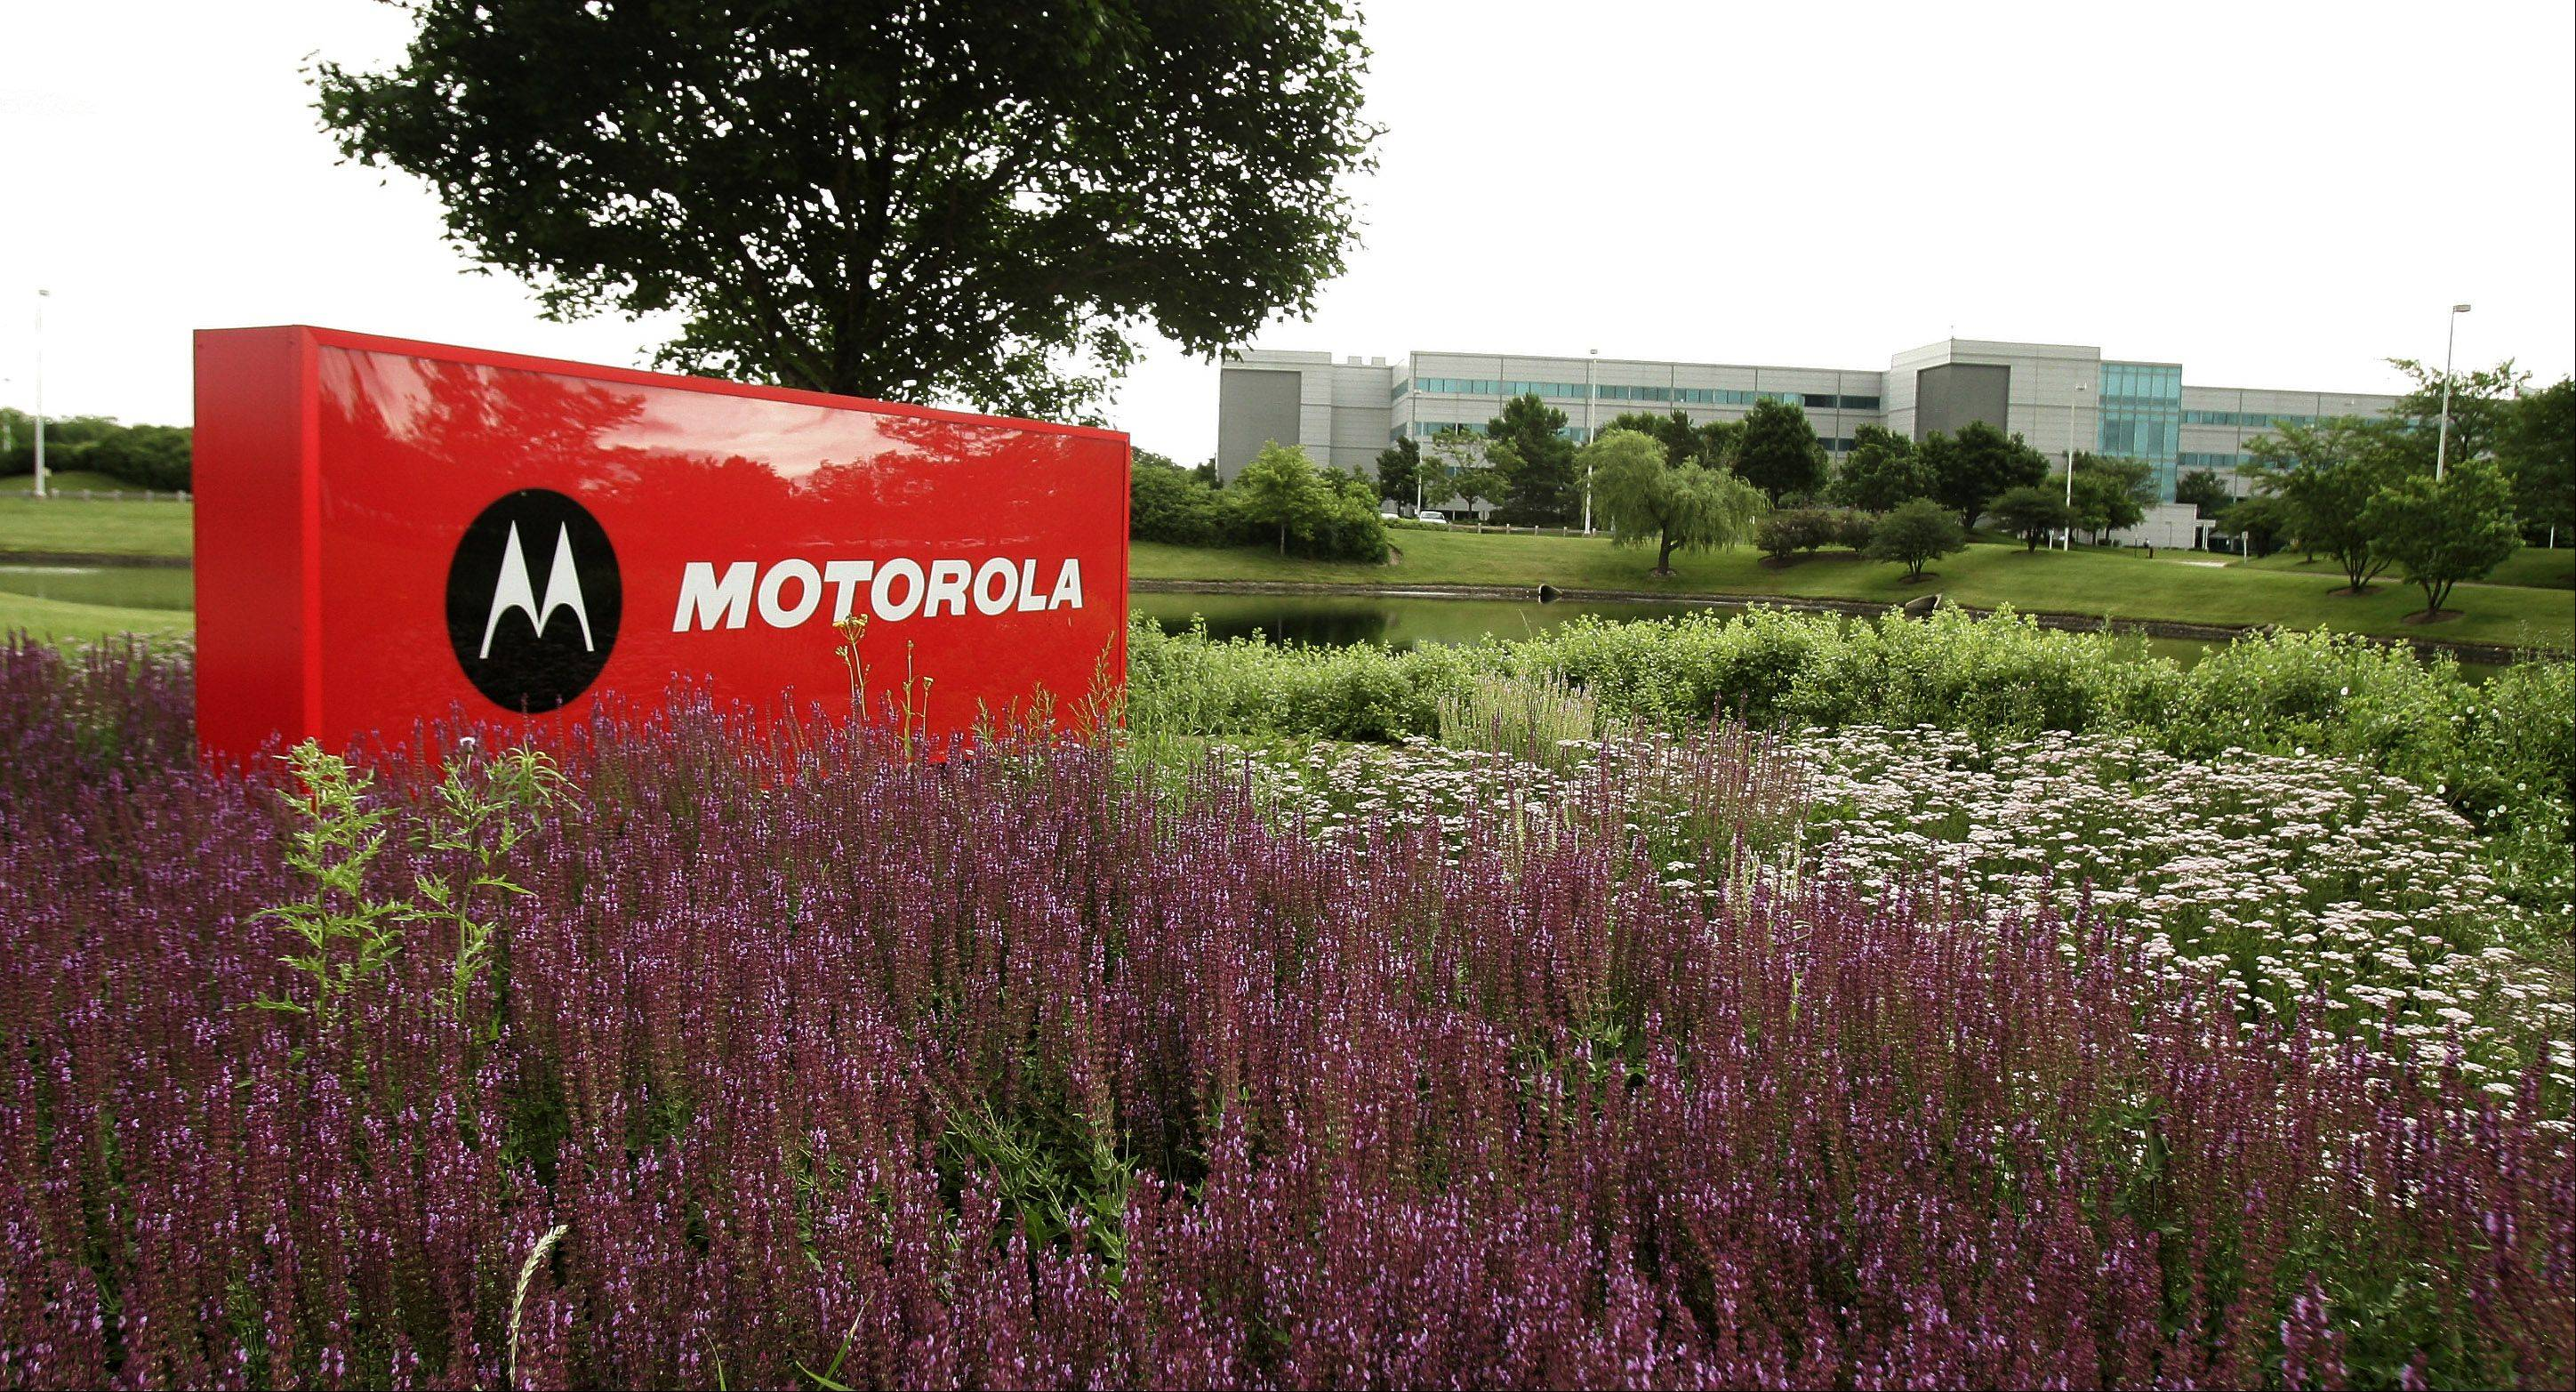 Motorola Mobility in Libertyville is expected to move to Chicago in late 2013.